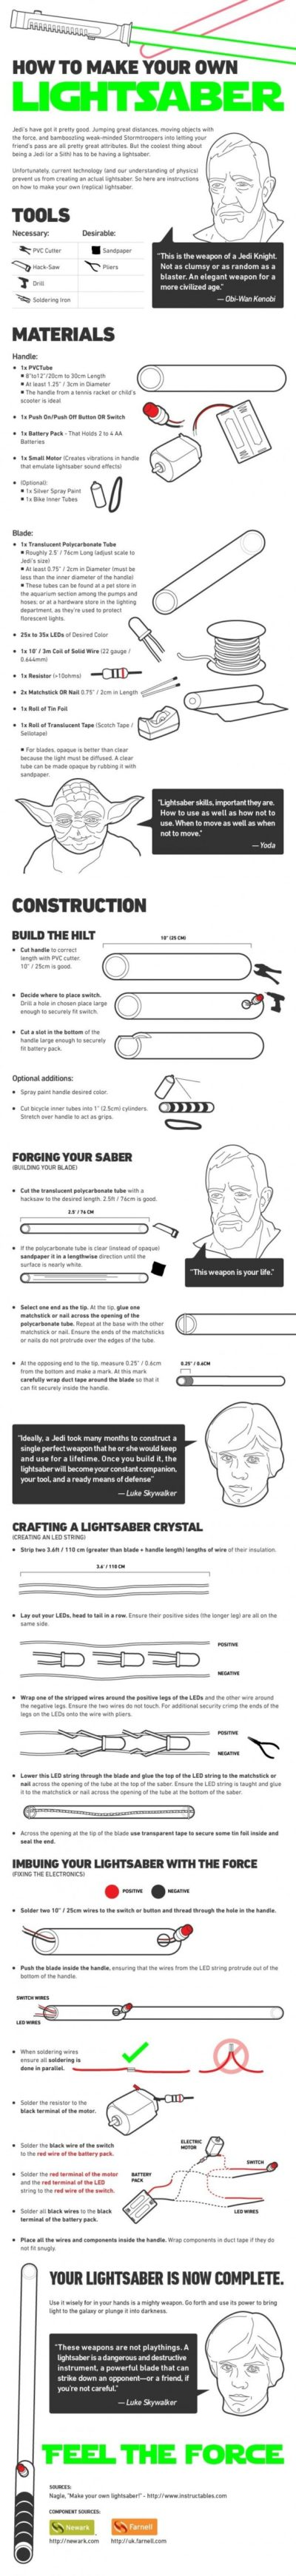 Build a Lightsaber